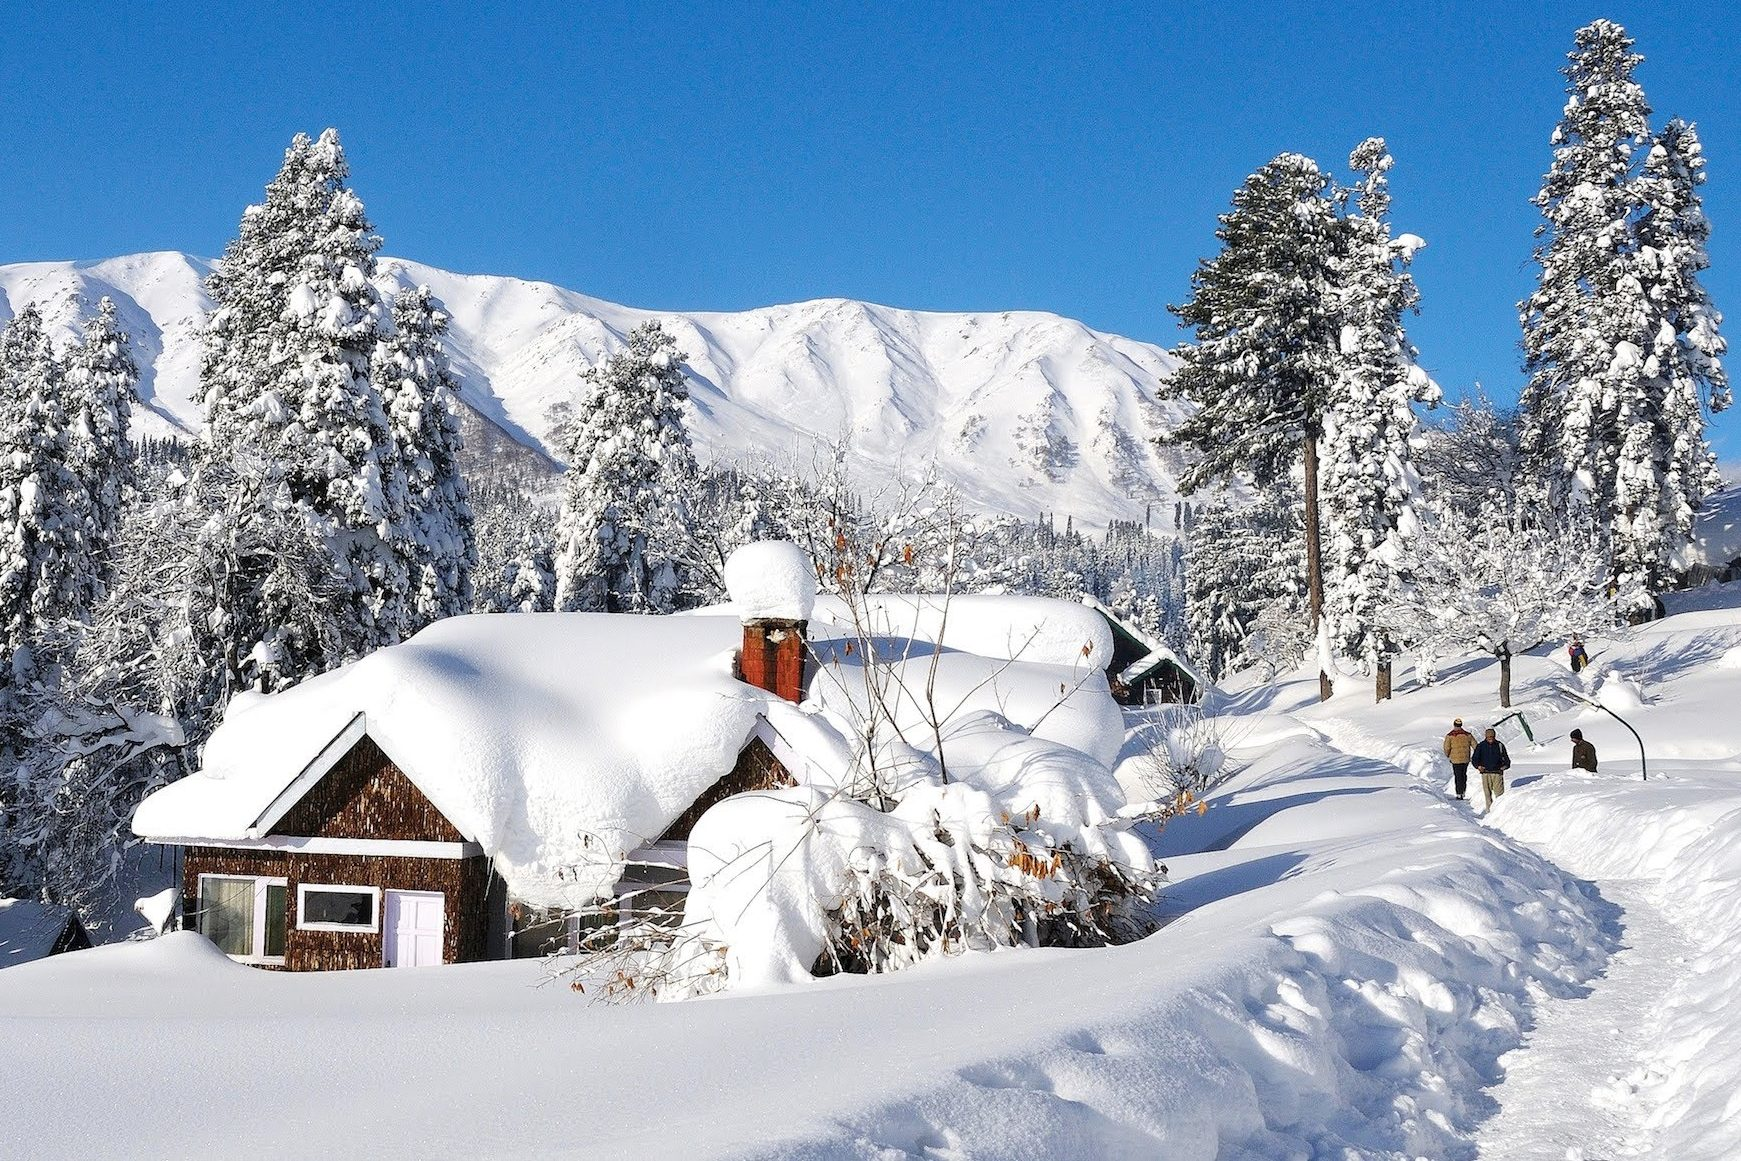 Gulmarg In Winters: A Gem in Kashmir's Crown